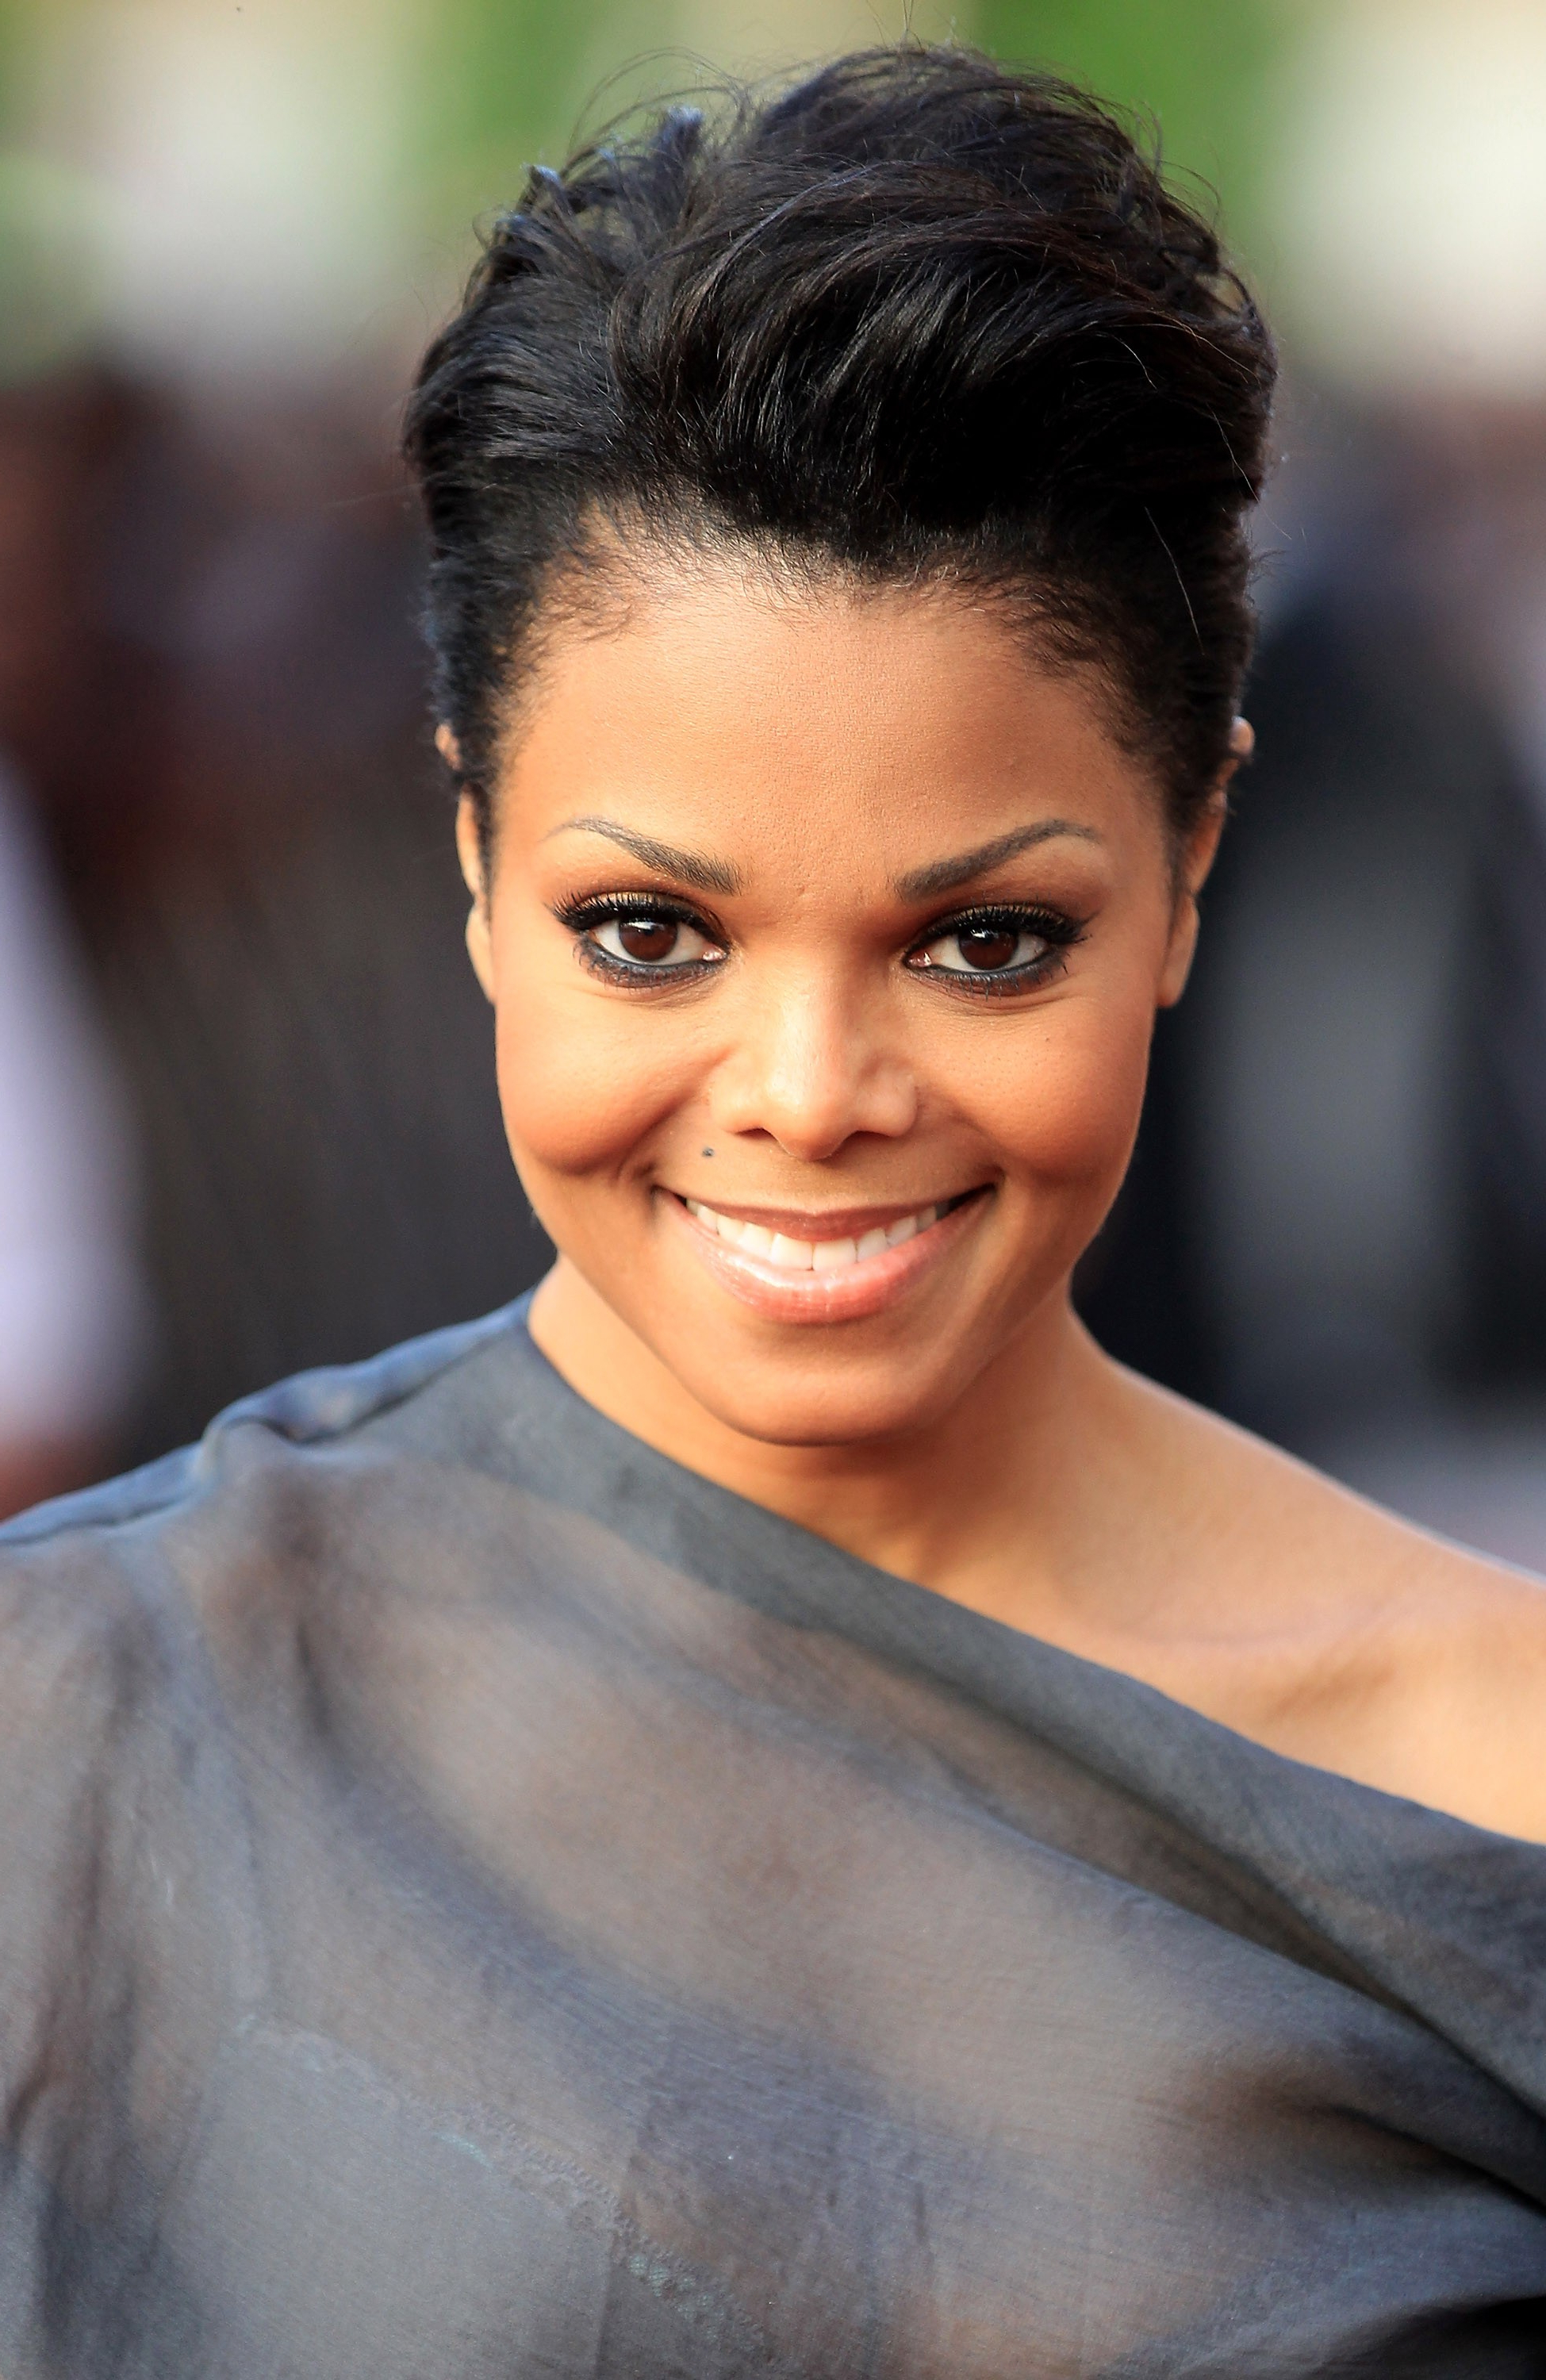 Best Short Hairstyles For Black Women With Thin Hair Within Black Woman Short Hairstyles (View 11 of 25)